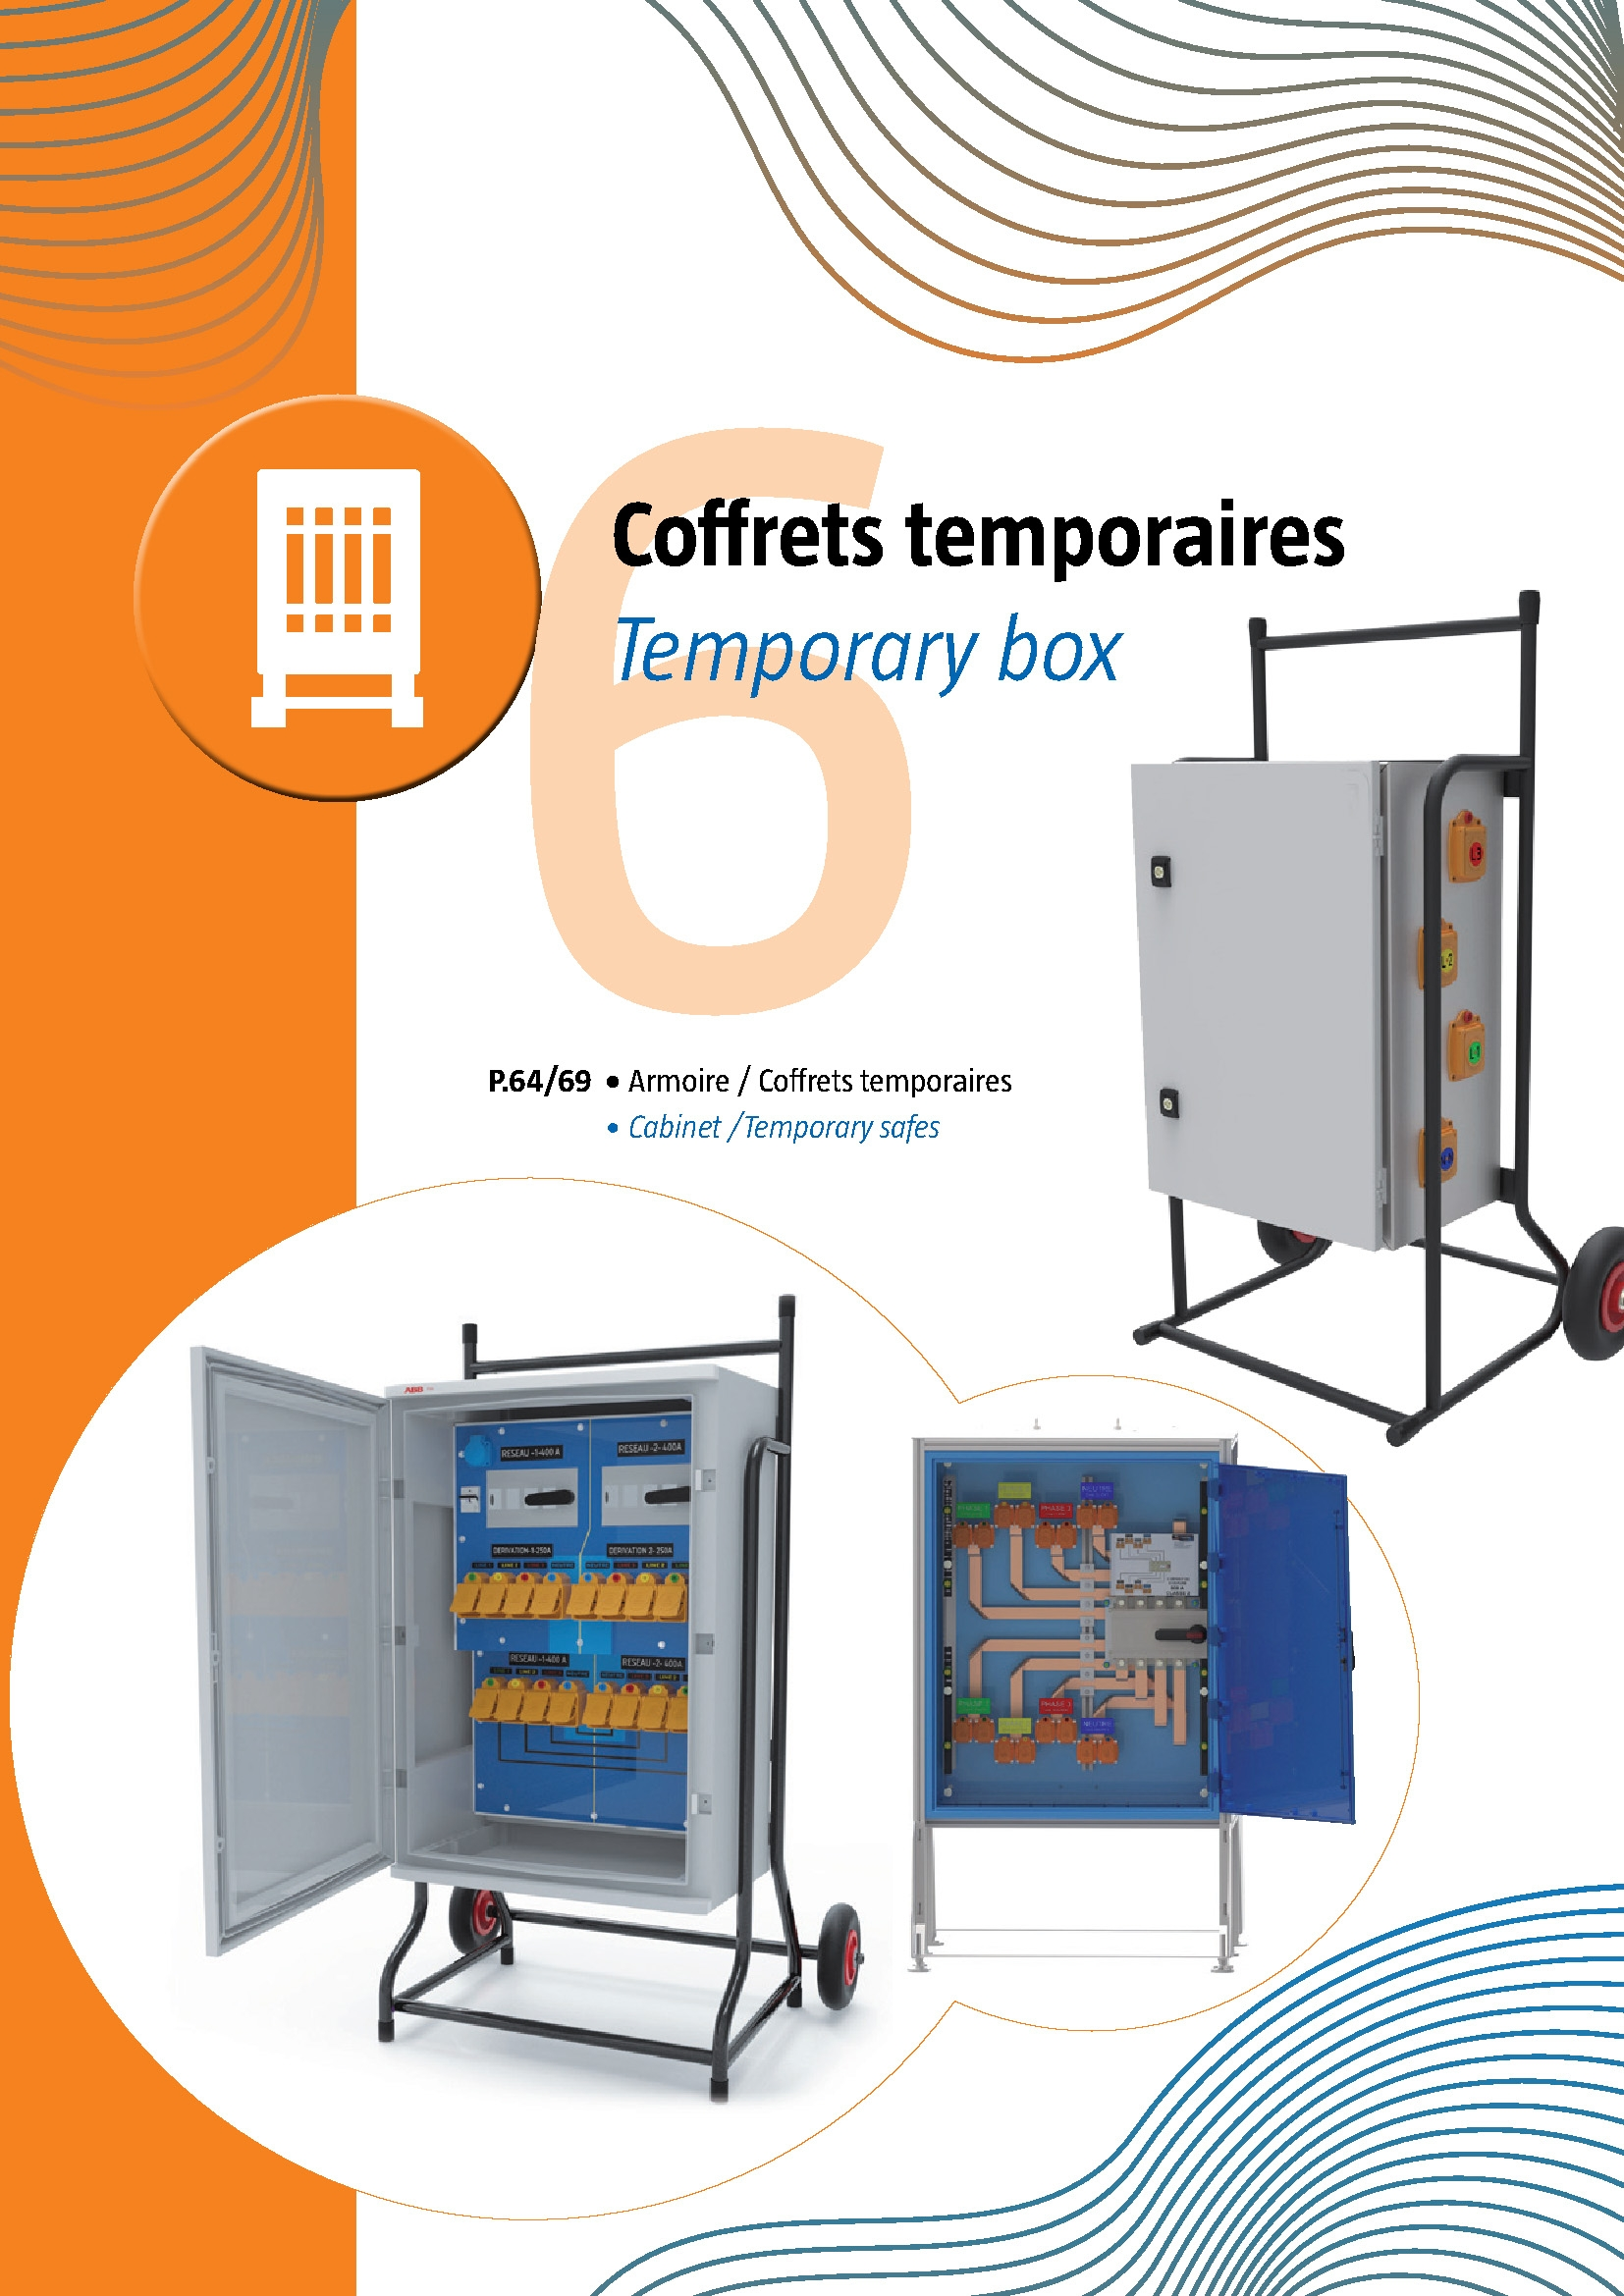 6 Temporary Cabinets